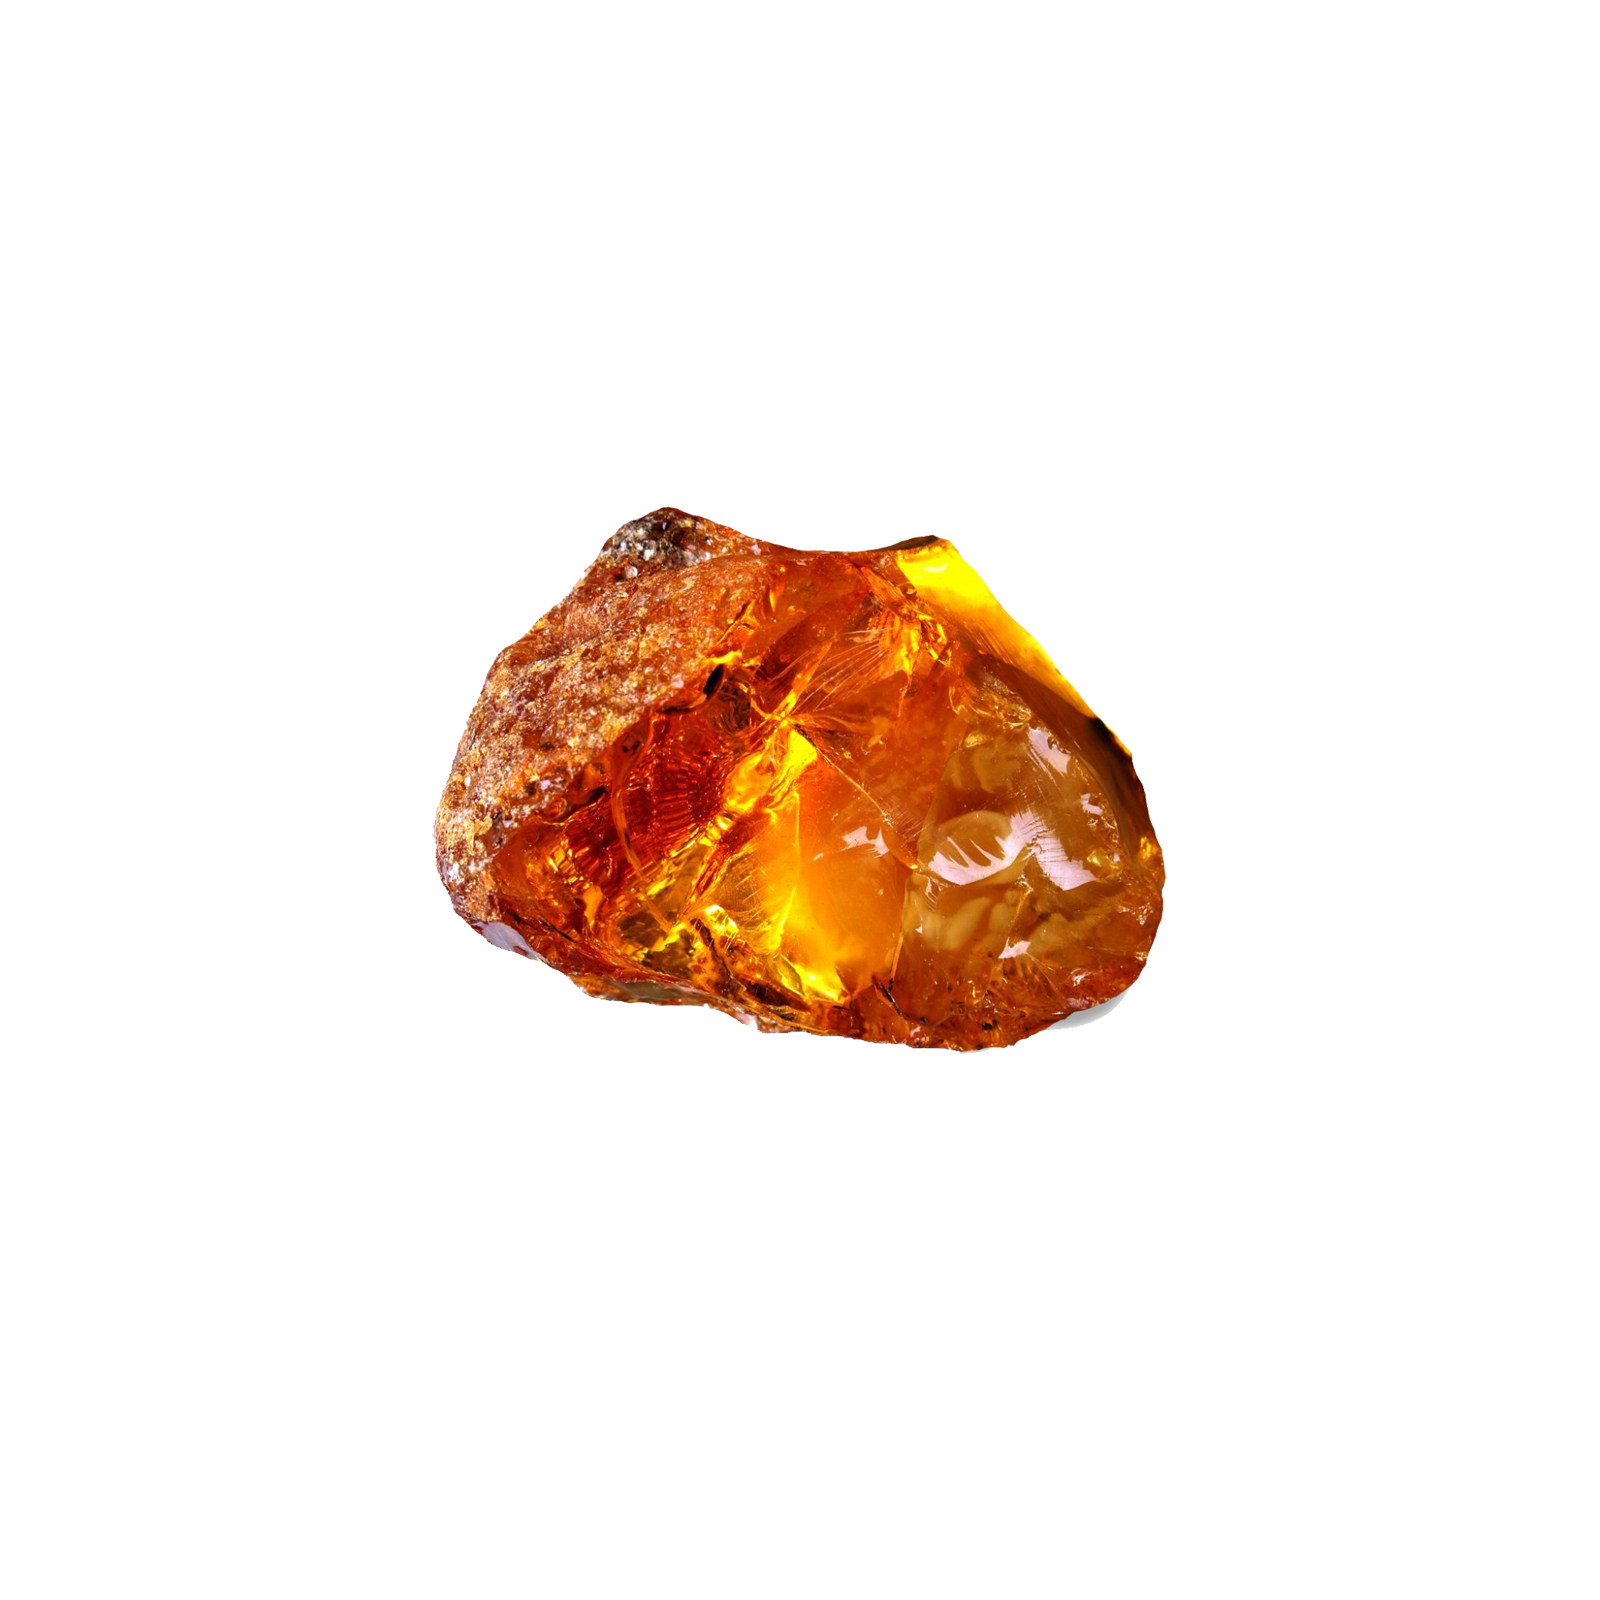 Transparent cherry amber from the Baltic Sea, Kaliningrad oblast of Russia